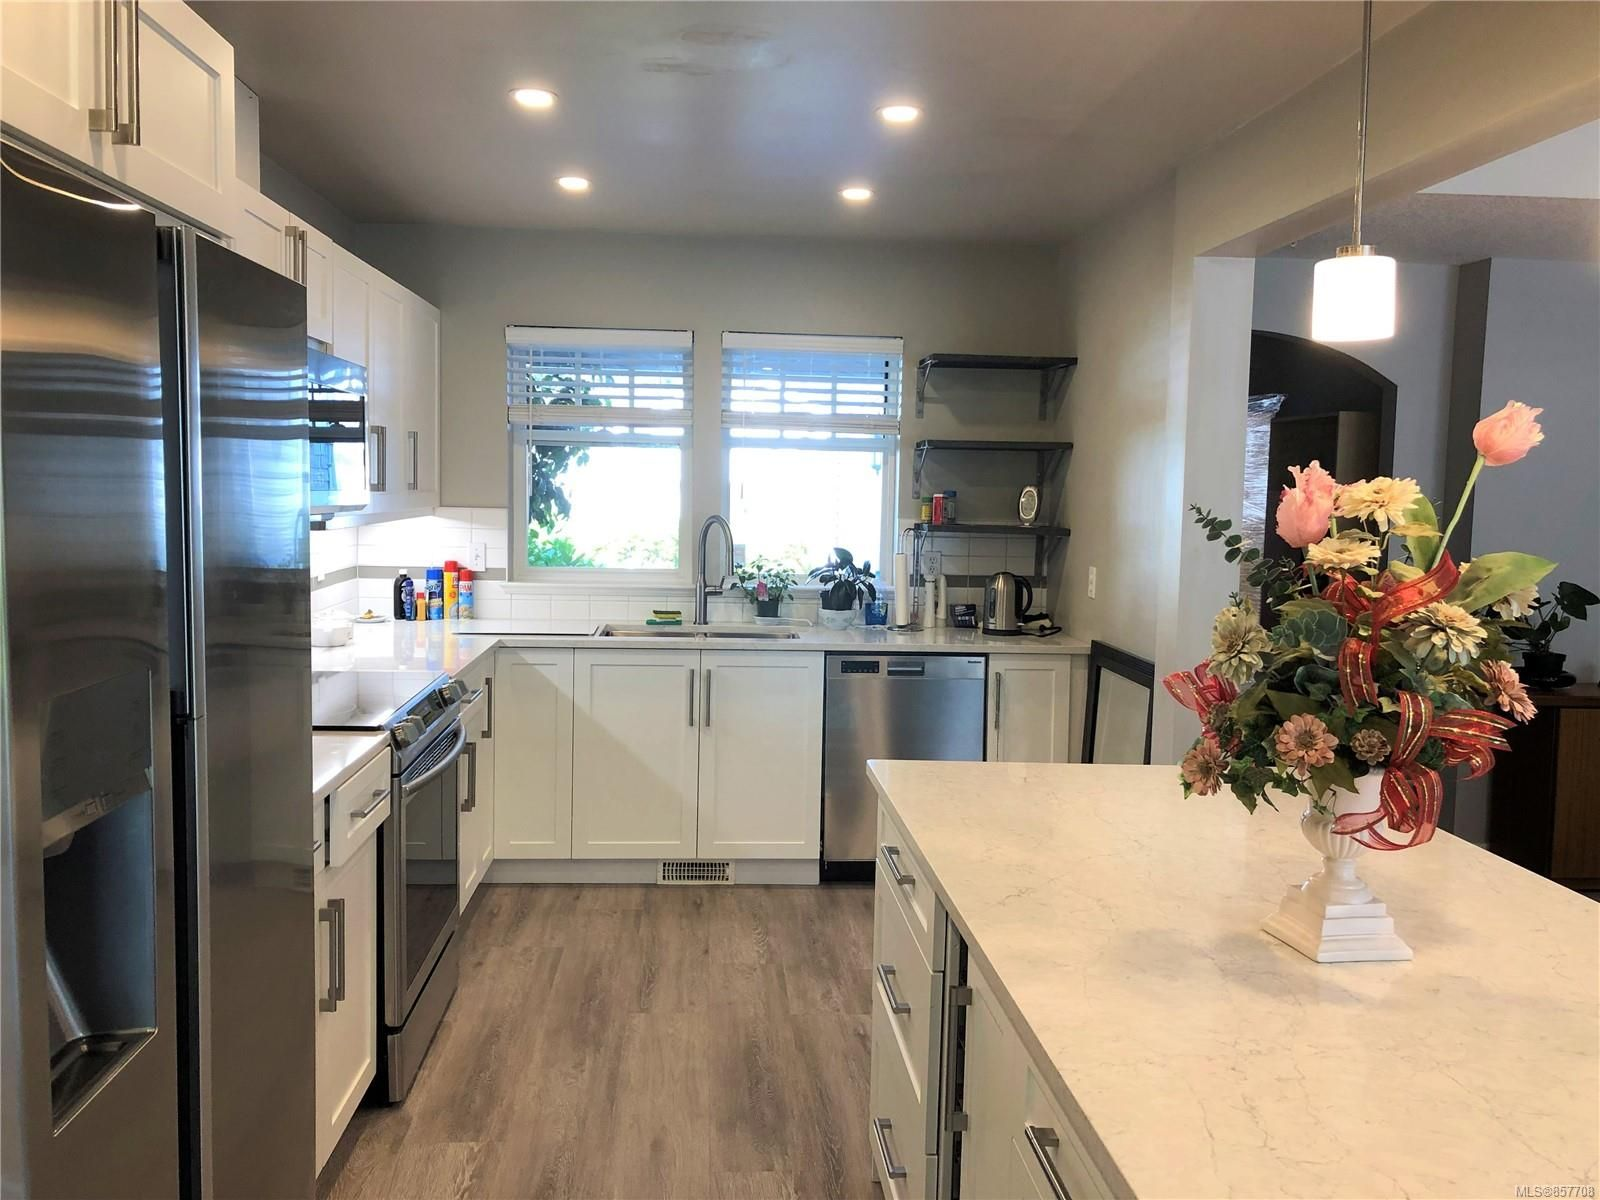 Photo 4: Photos: 6151 Bellflower Way in : Na North Nanaimo Row/Townhouse for sale (Nanaimo)  : MLS®# 857708